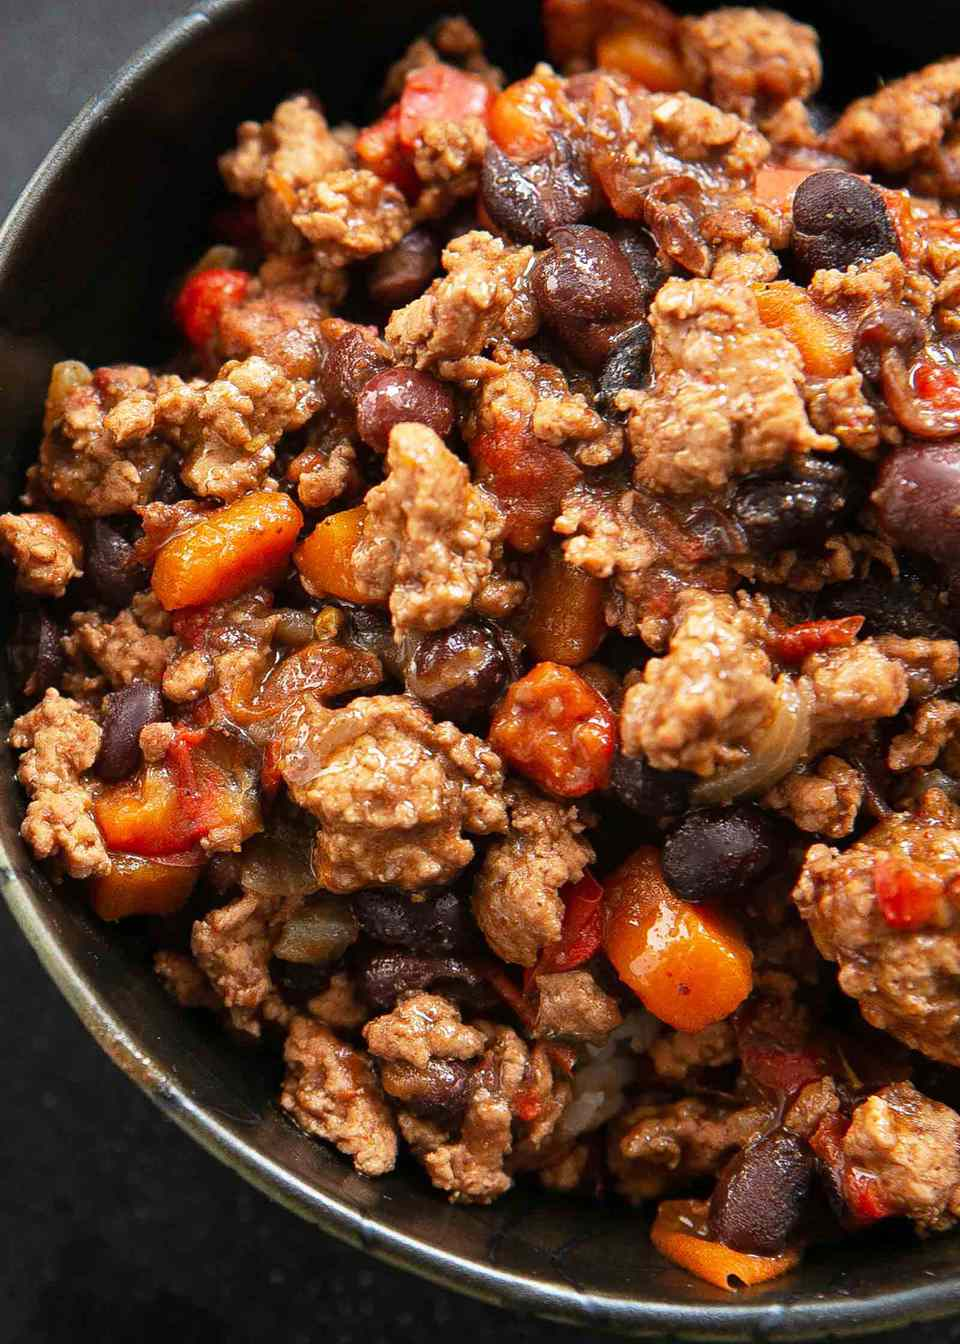 Chili with Turkey and Black Beans